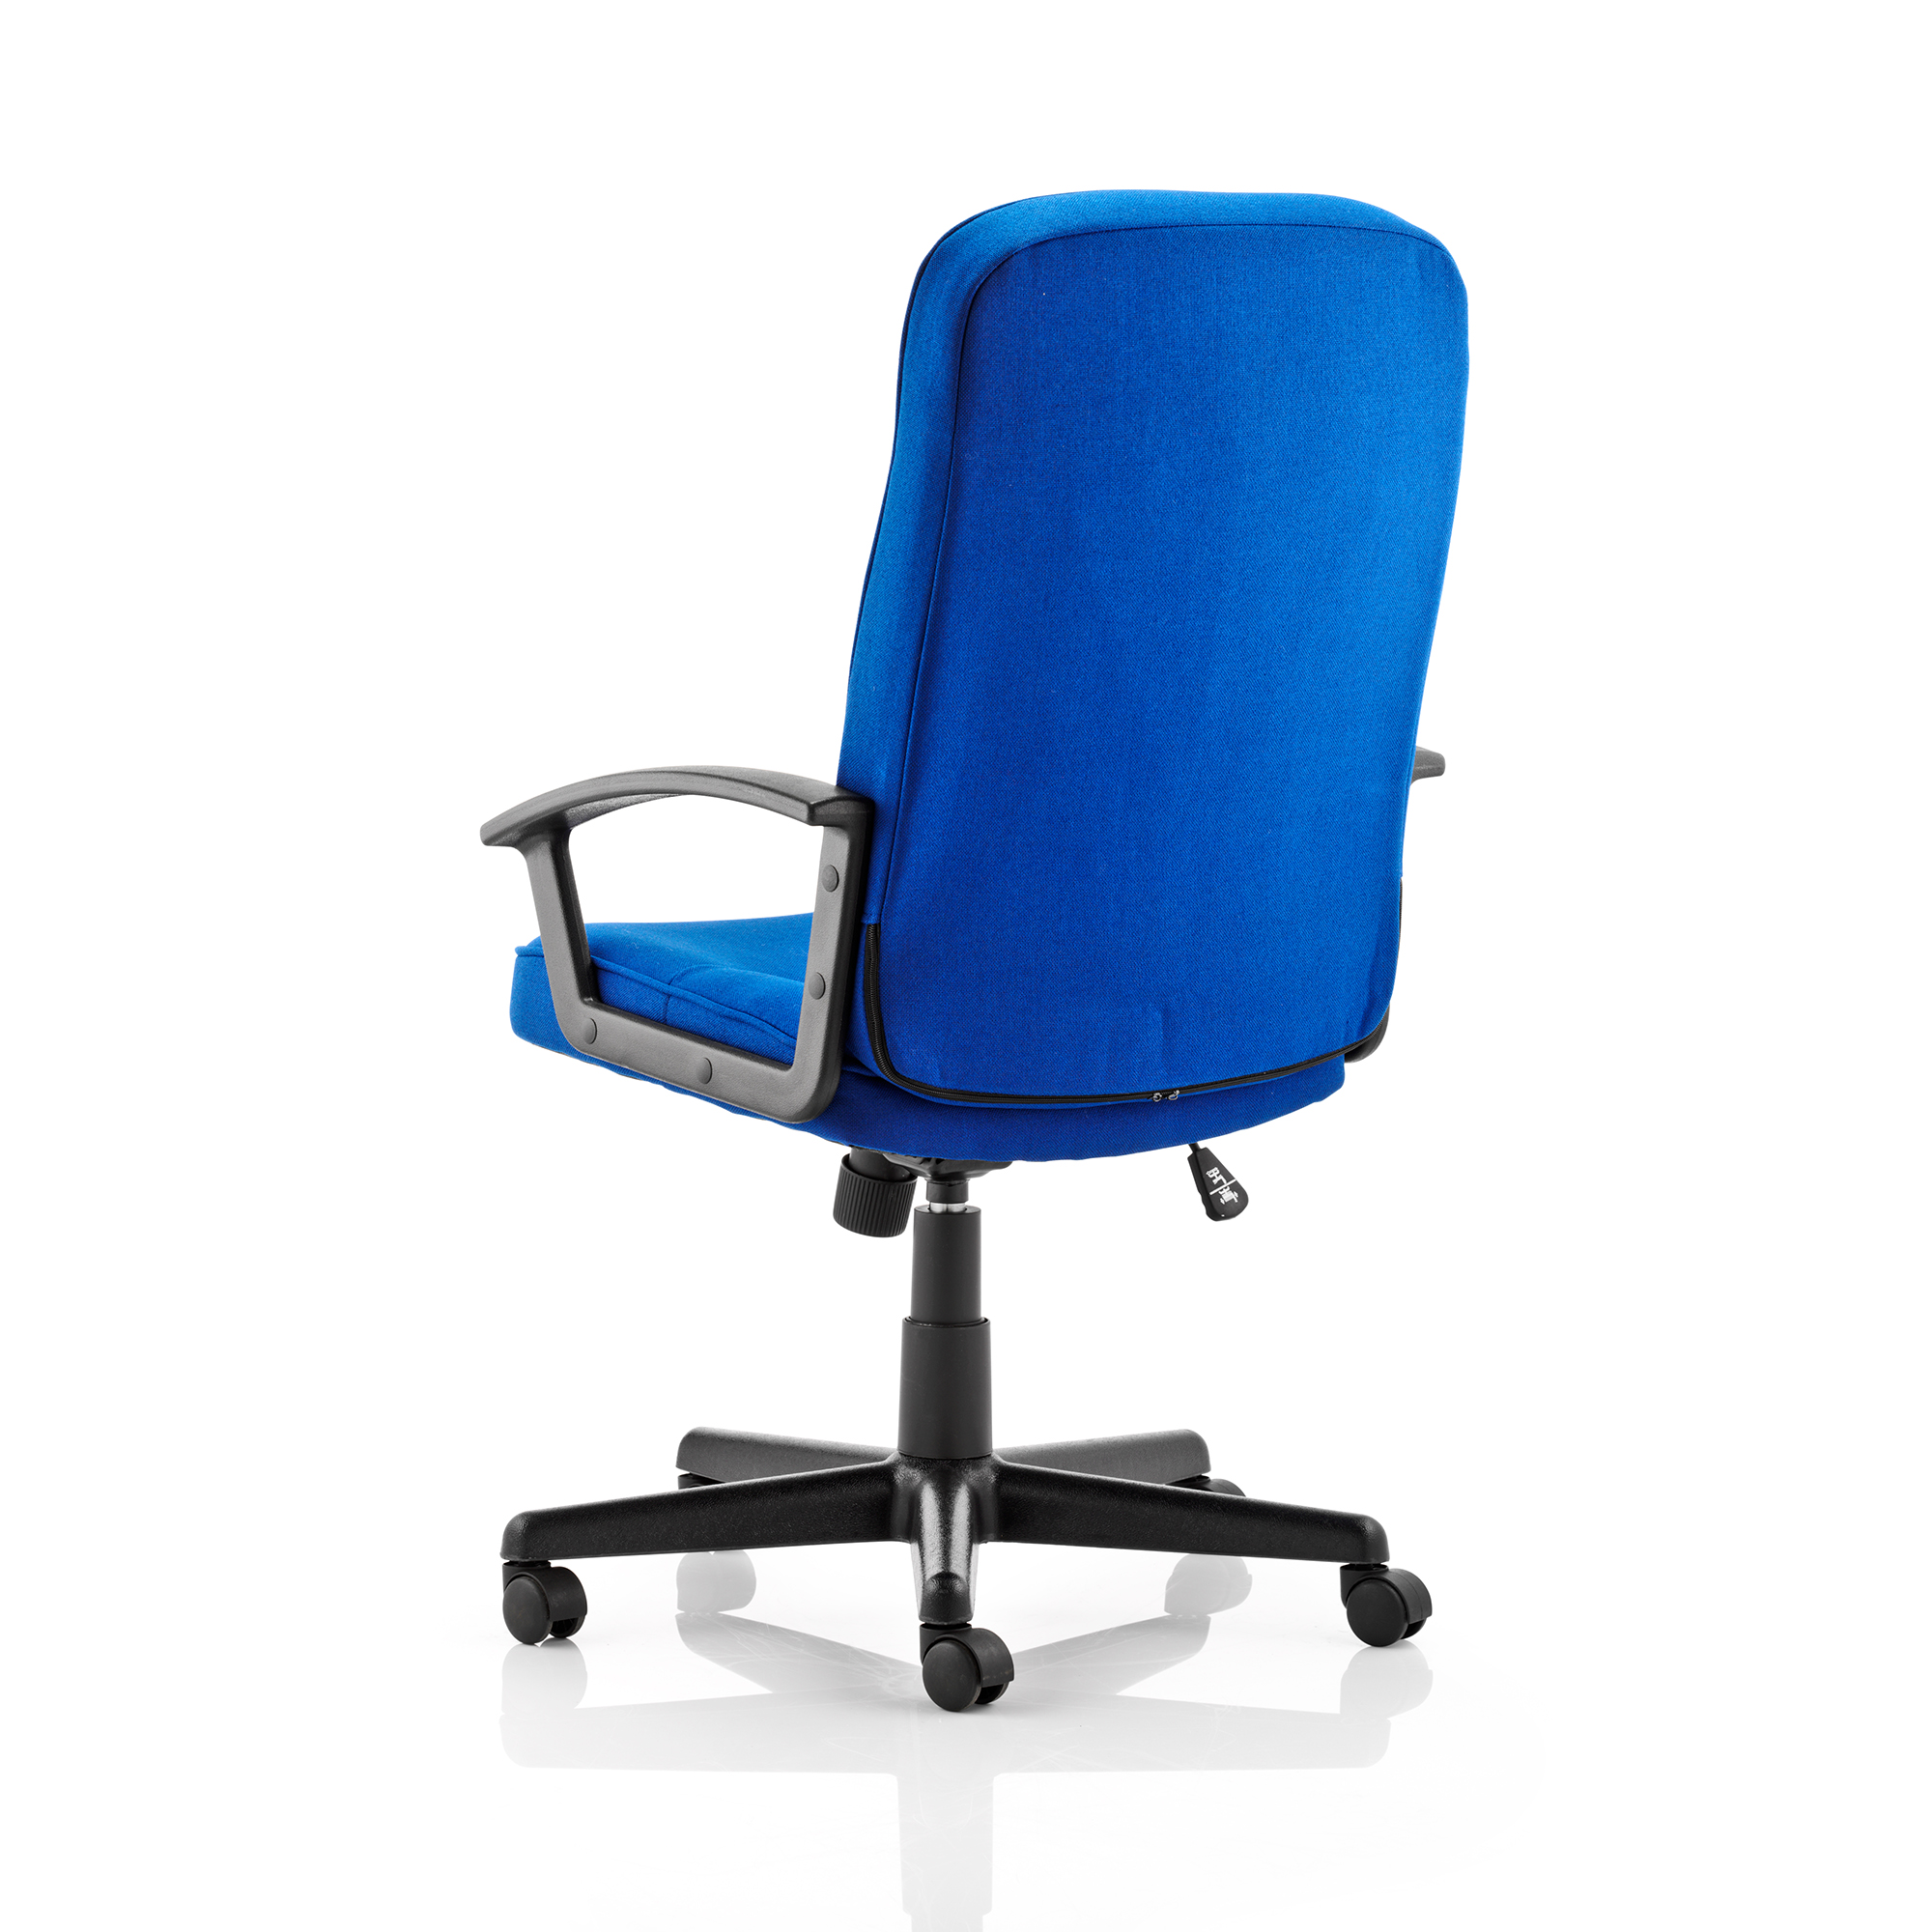 Trexus Harley Executive Chair With Arms Fabric Blue Ref EX000036